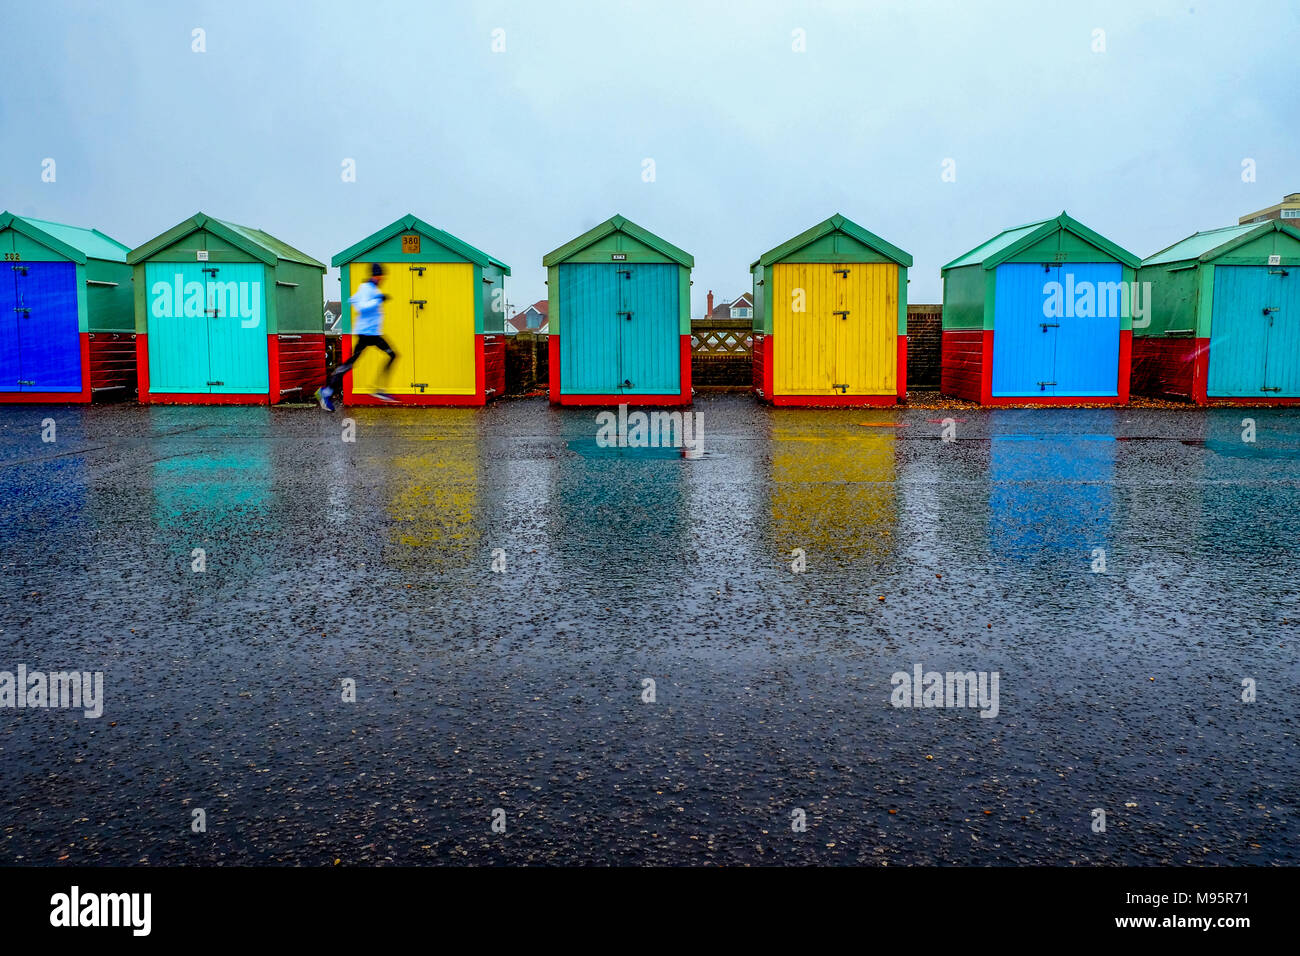 Brighton seafront seven beach huts, five with blue and green doors and two with yellow doors the beach huts are in a line on a concrete promenade the  Stock Photo